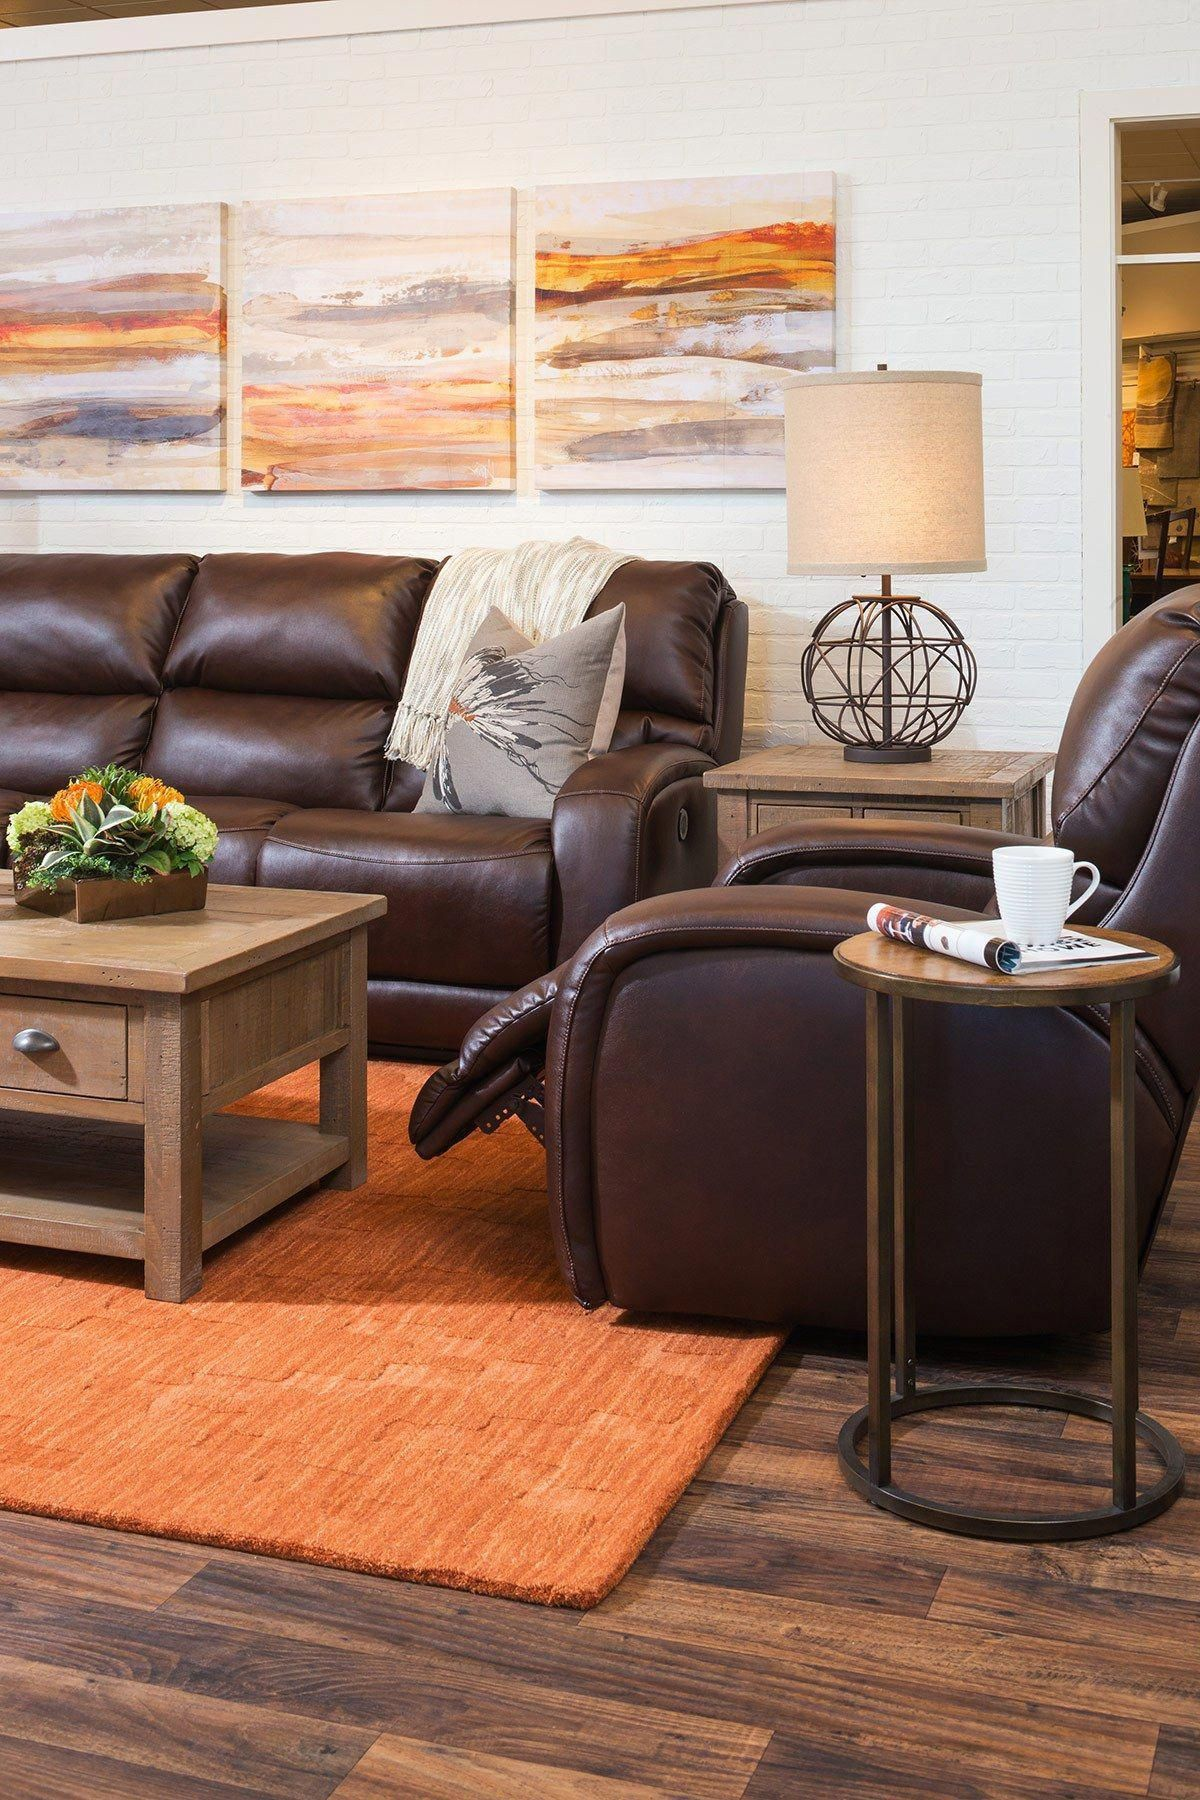 Drawing Room Sofa Designs India: Furniture Shipping From India To Usa #FurnitureBuyingGuide